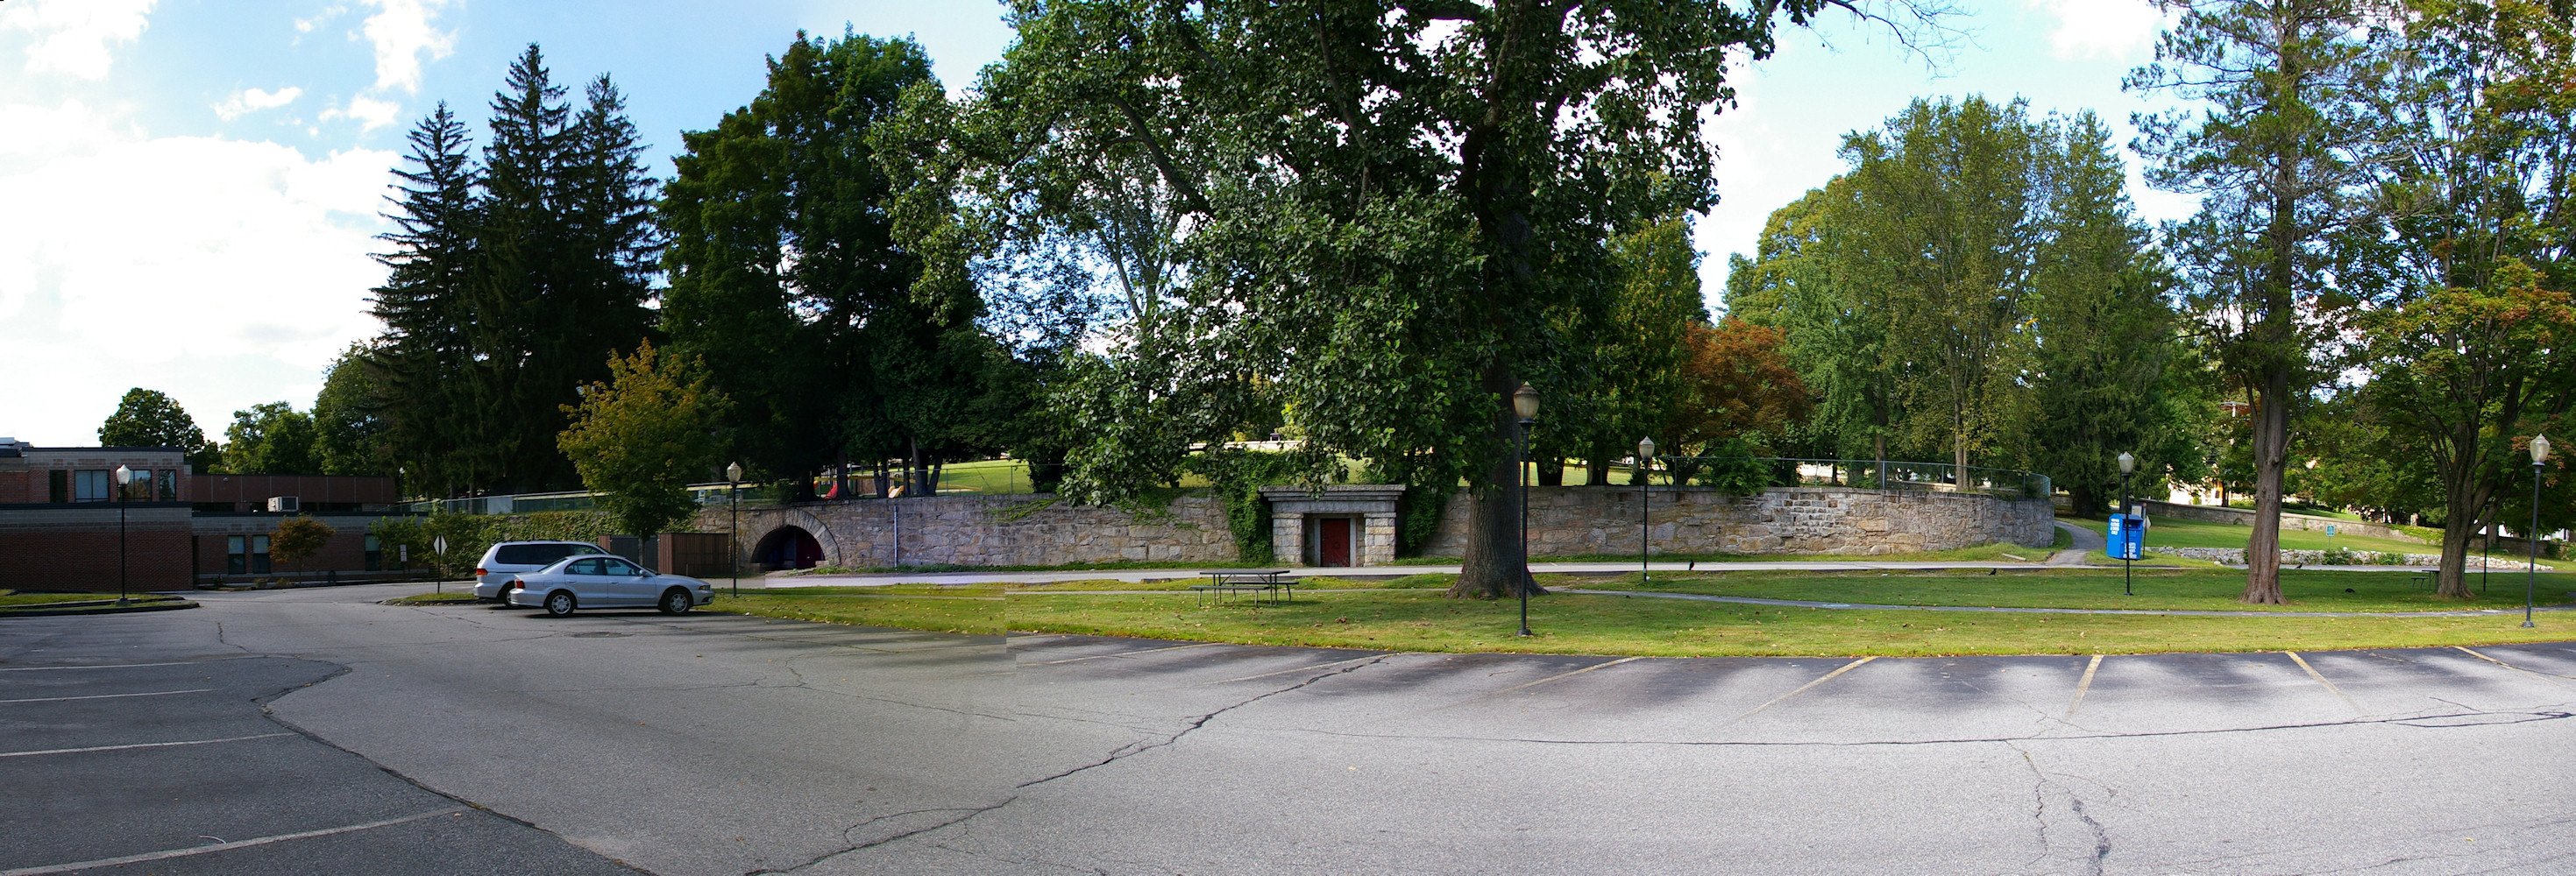 IMGP6911Stitch.jpg - Whitin Community Center